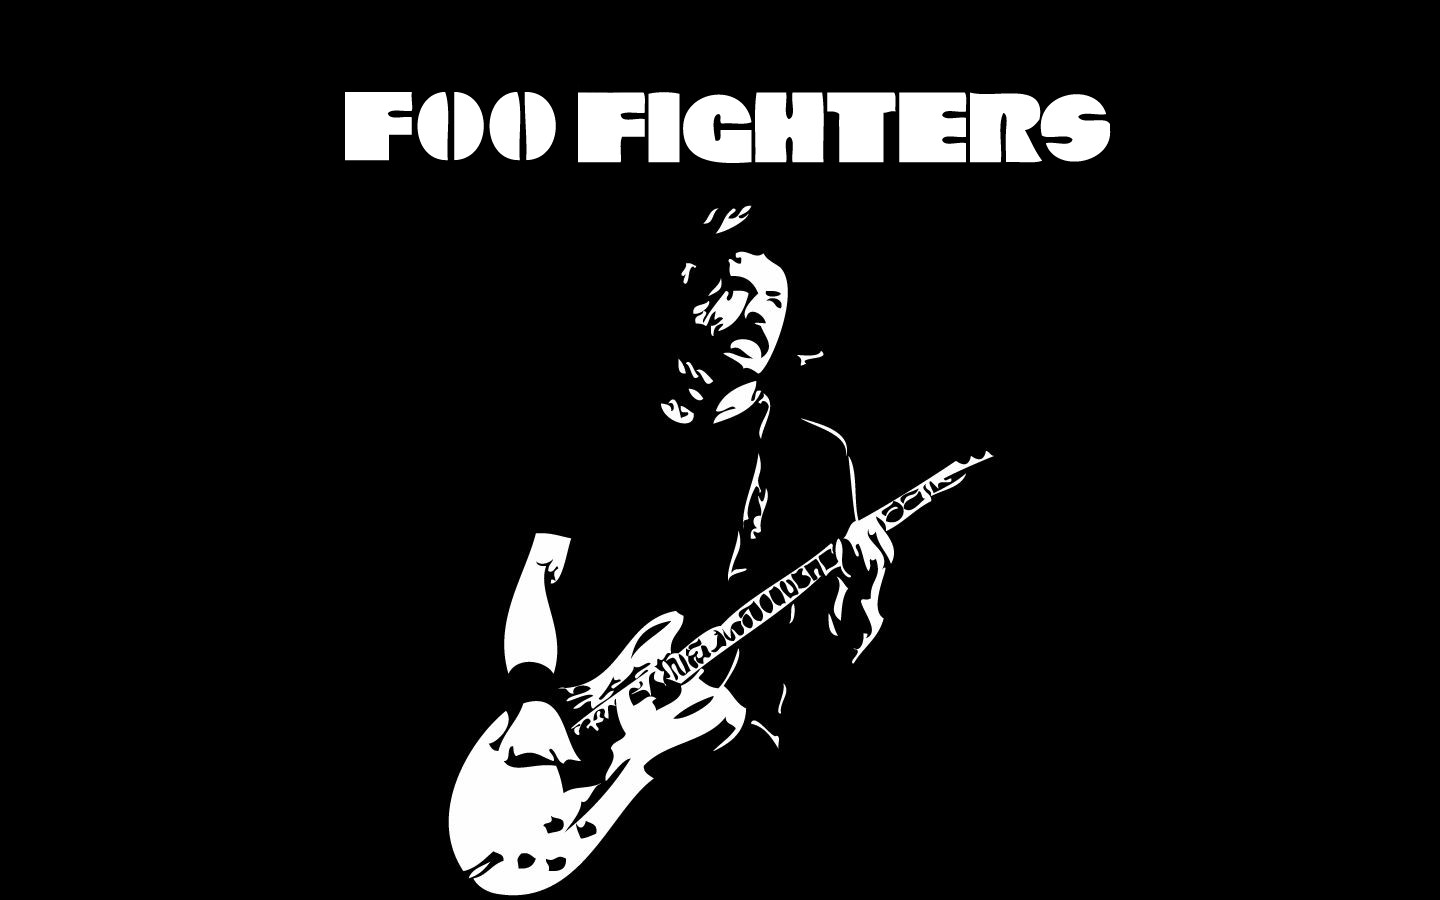 Foo Fighters高清壁纸